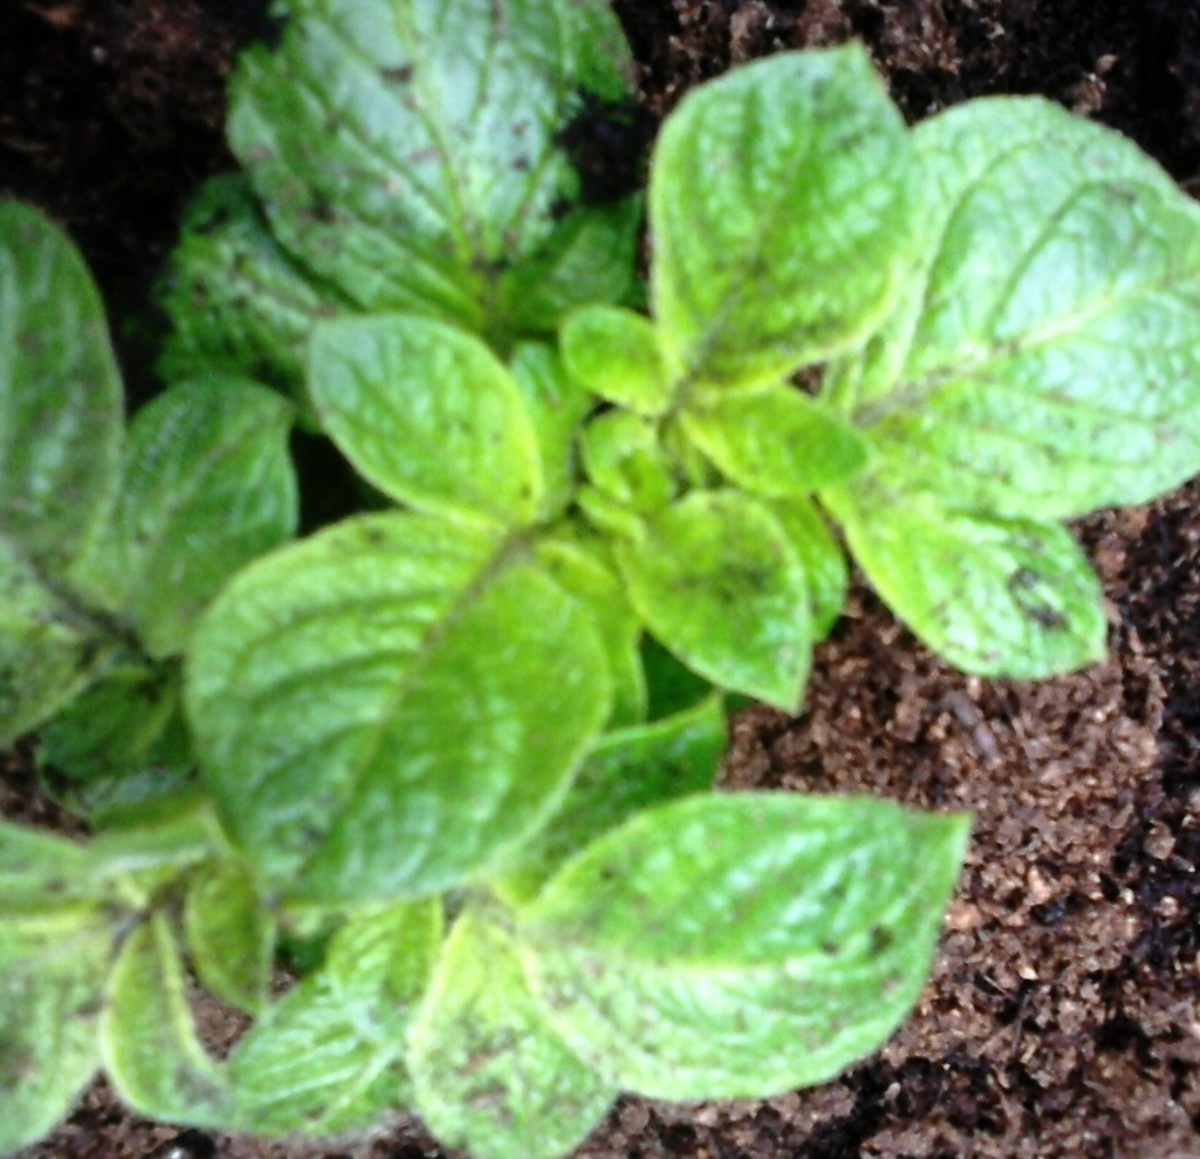 Once you see the sprouts appearing on your  potatoes, it's important that you cover the potatoes each time. You will be surprised how quick it starts to grow.